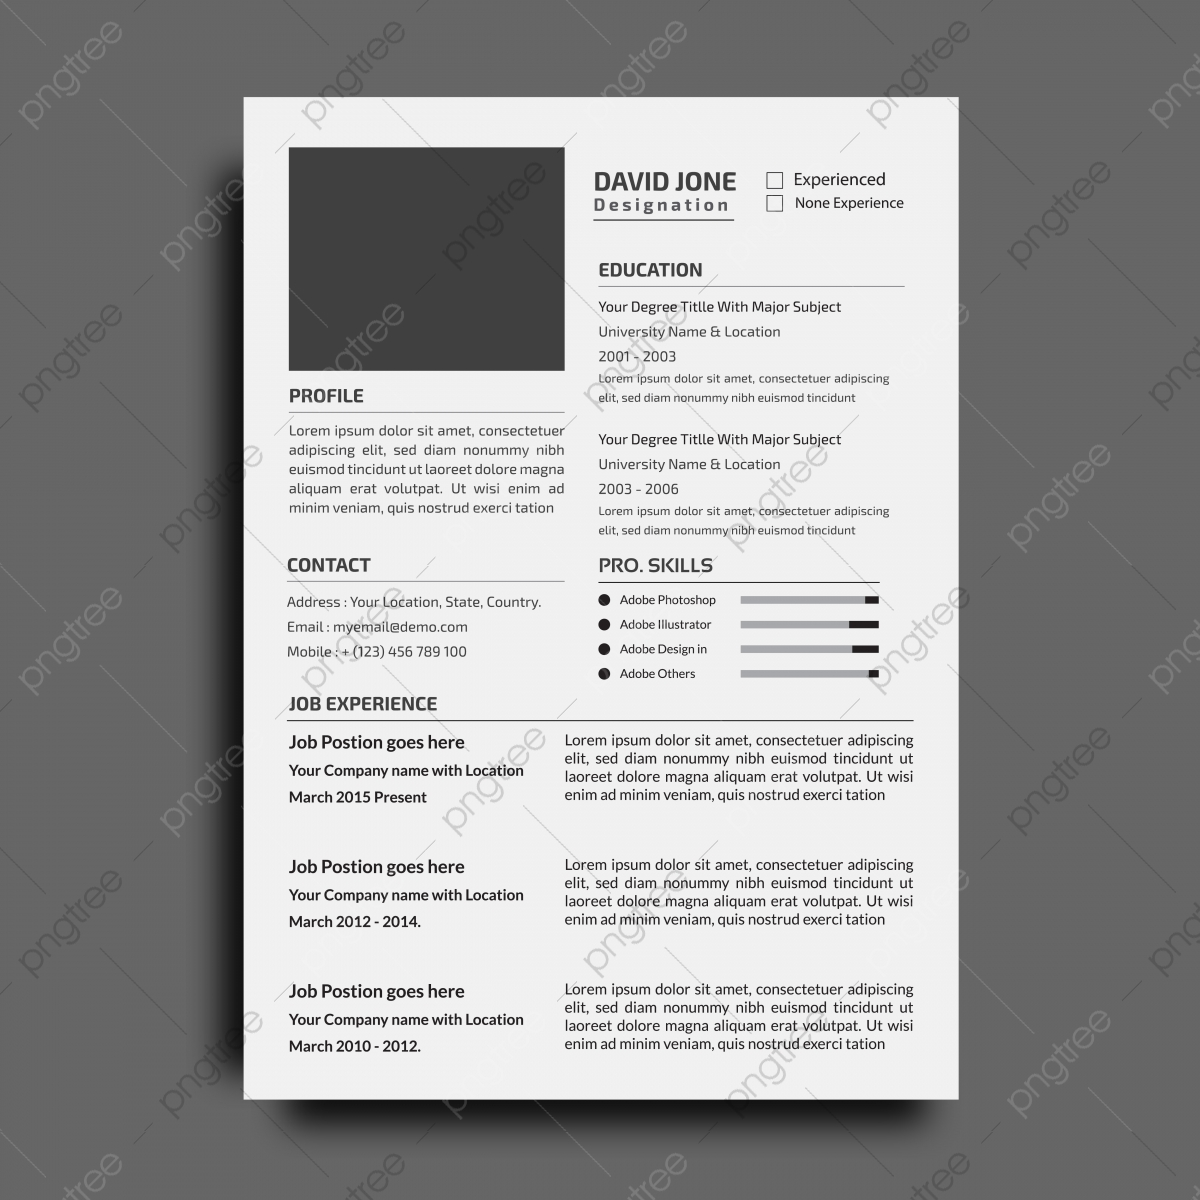 corporate resume or cv design template modern word free professional editable templates Resume Resume Templates 2019 Download